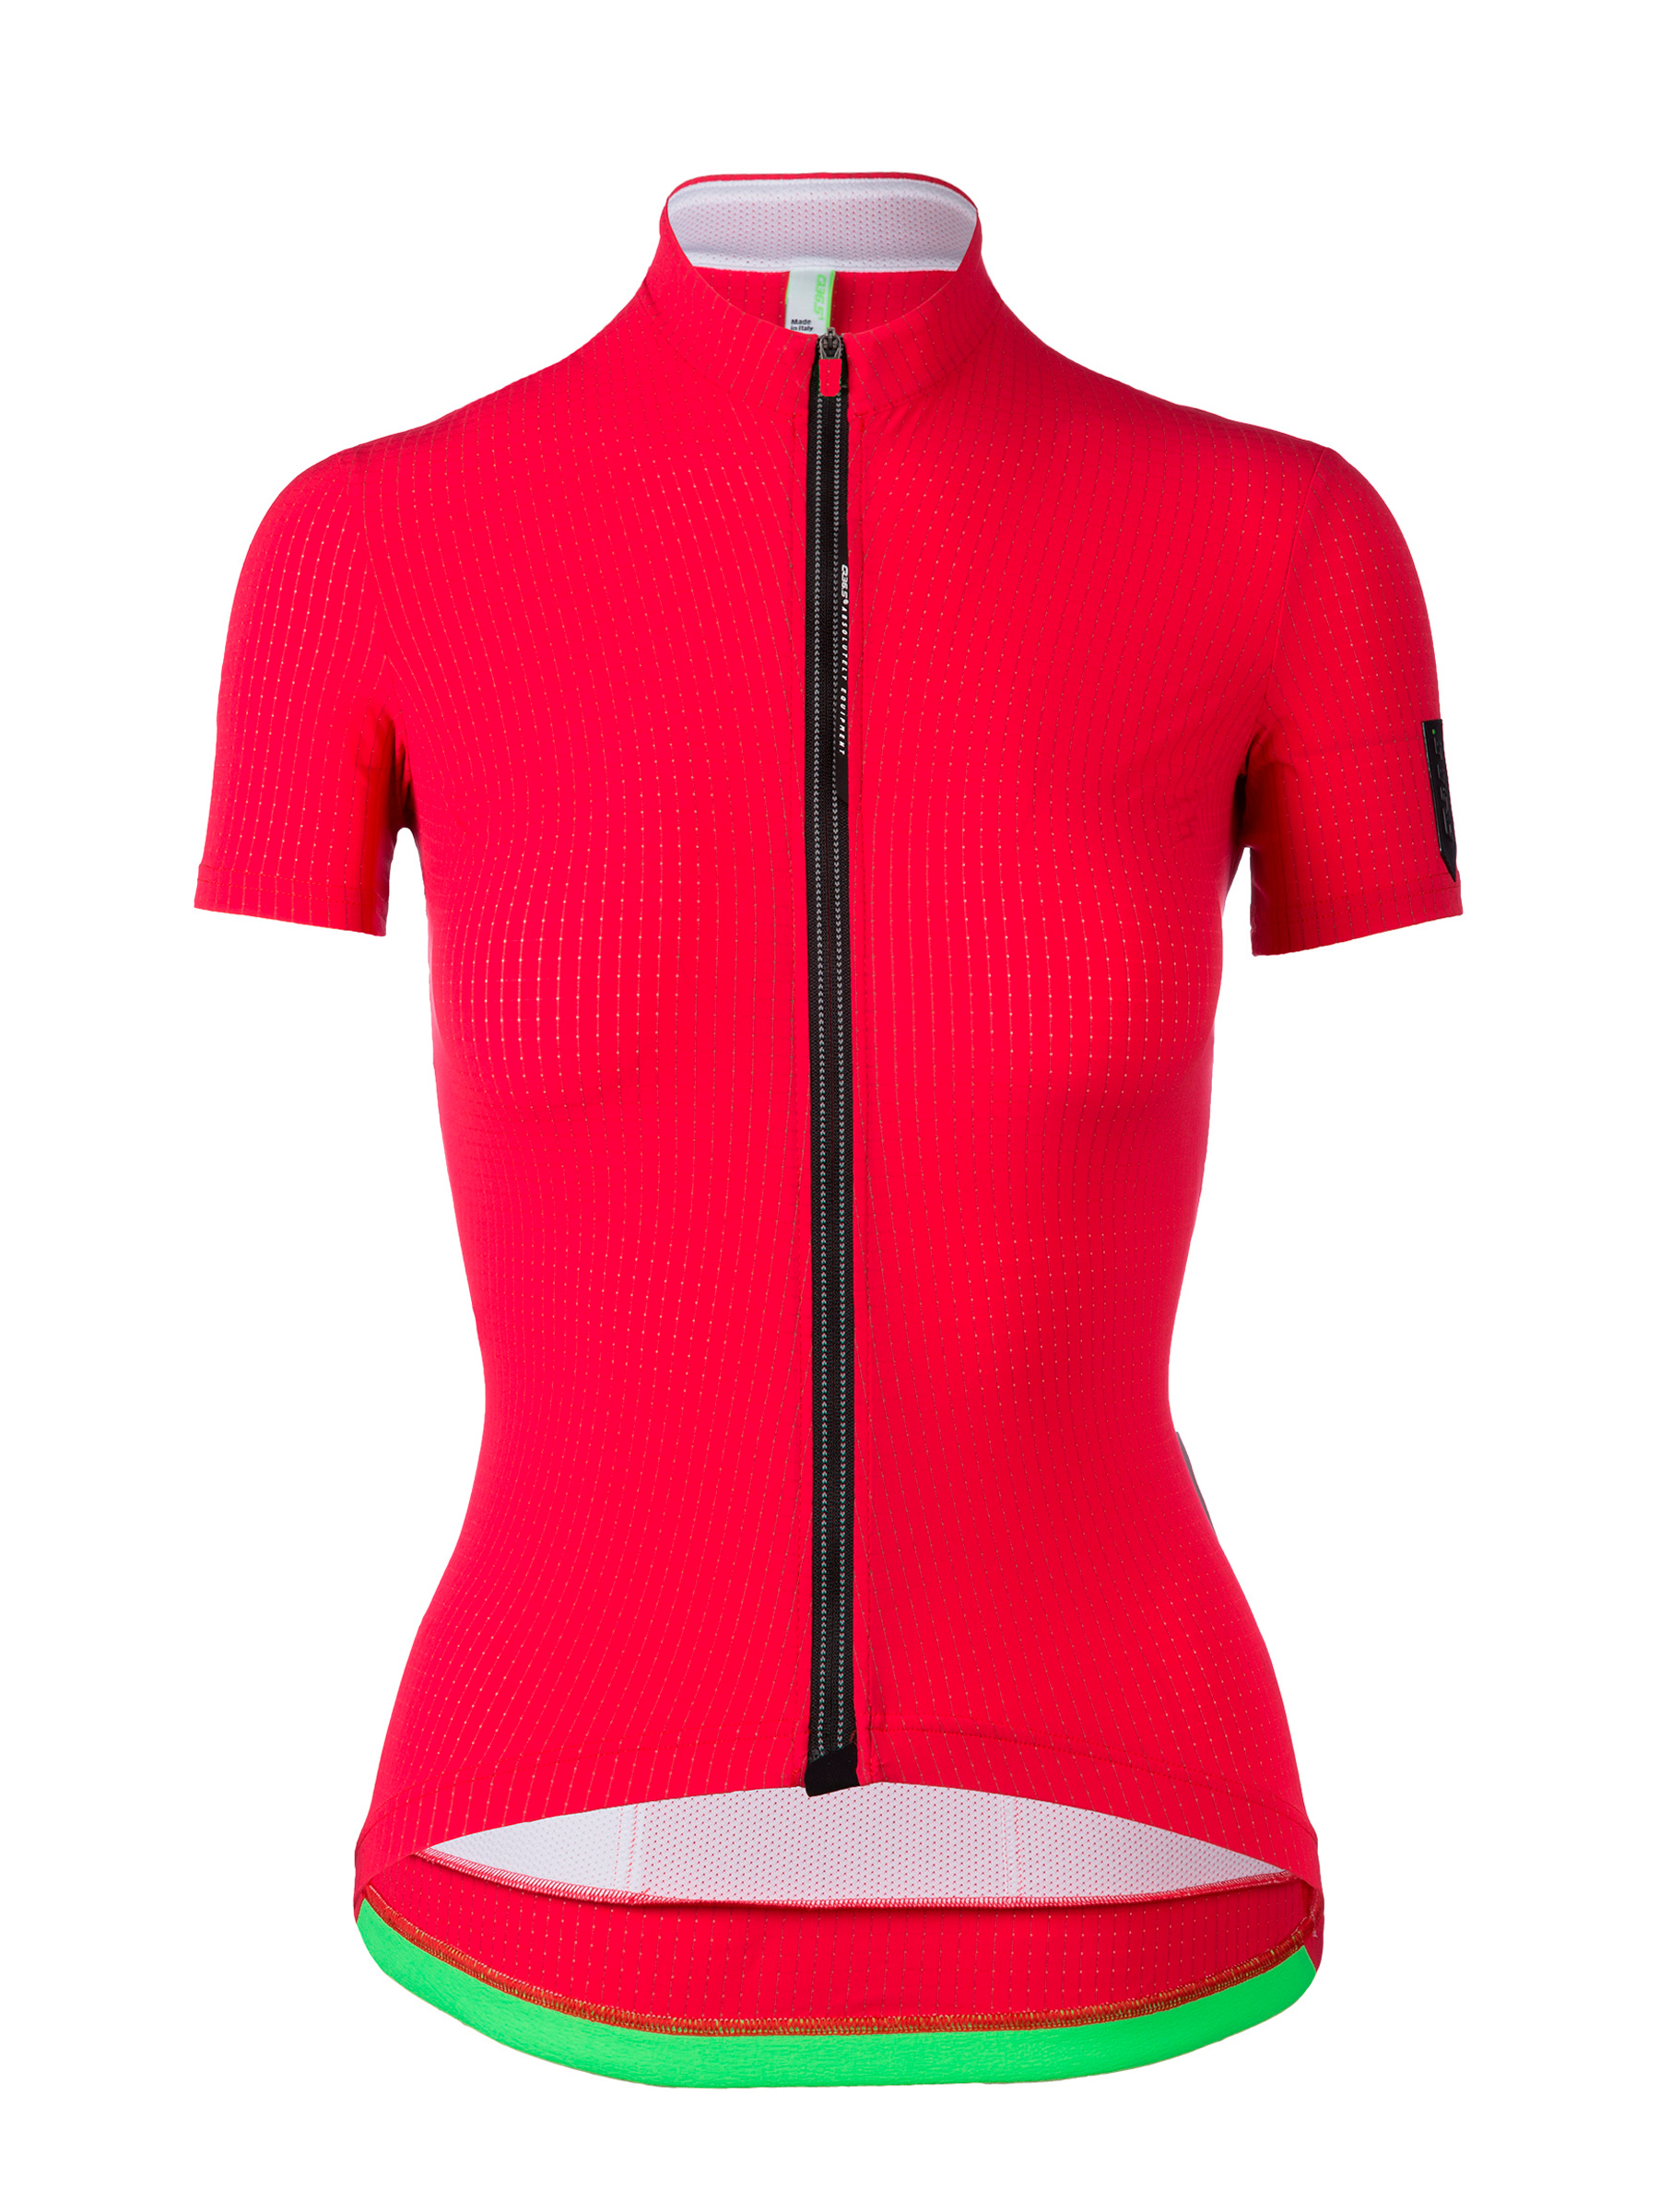 Womens cycling Jersey short sleeve L1 Lady Pinstripe red Q36.5